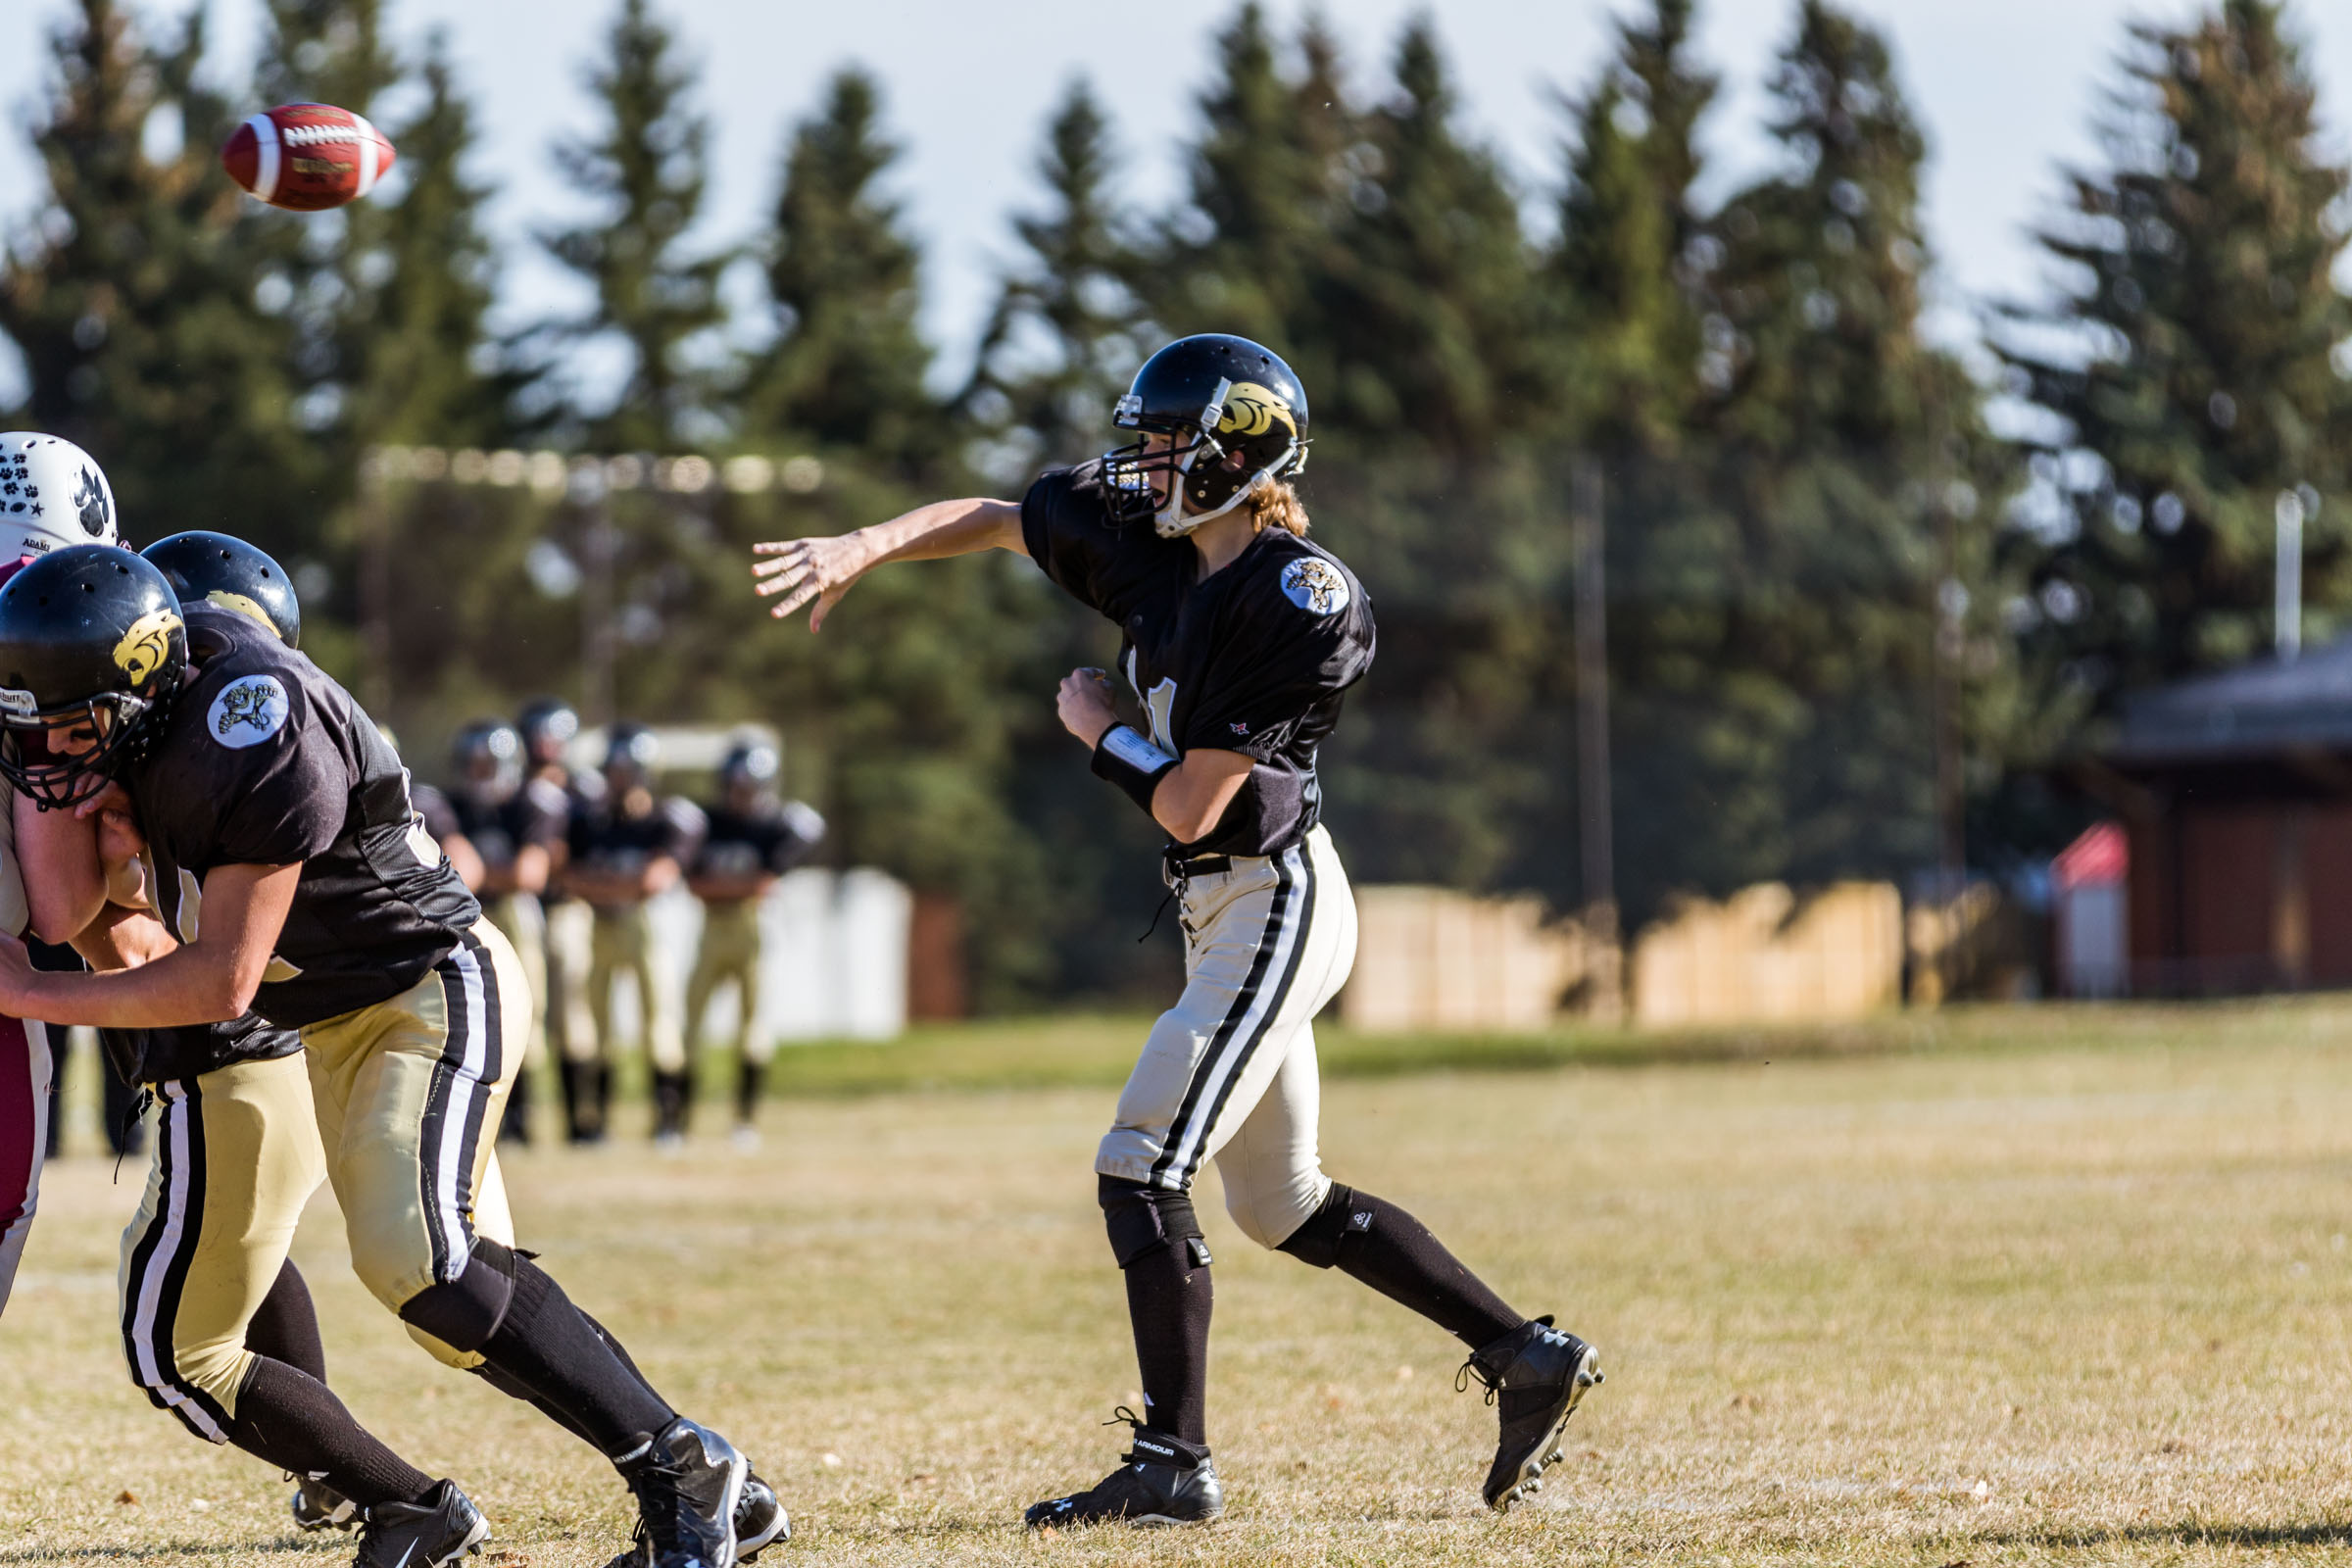 0042_macklinsabres_haguepanthers_football_September 30, 2016.jpg